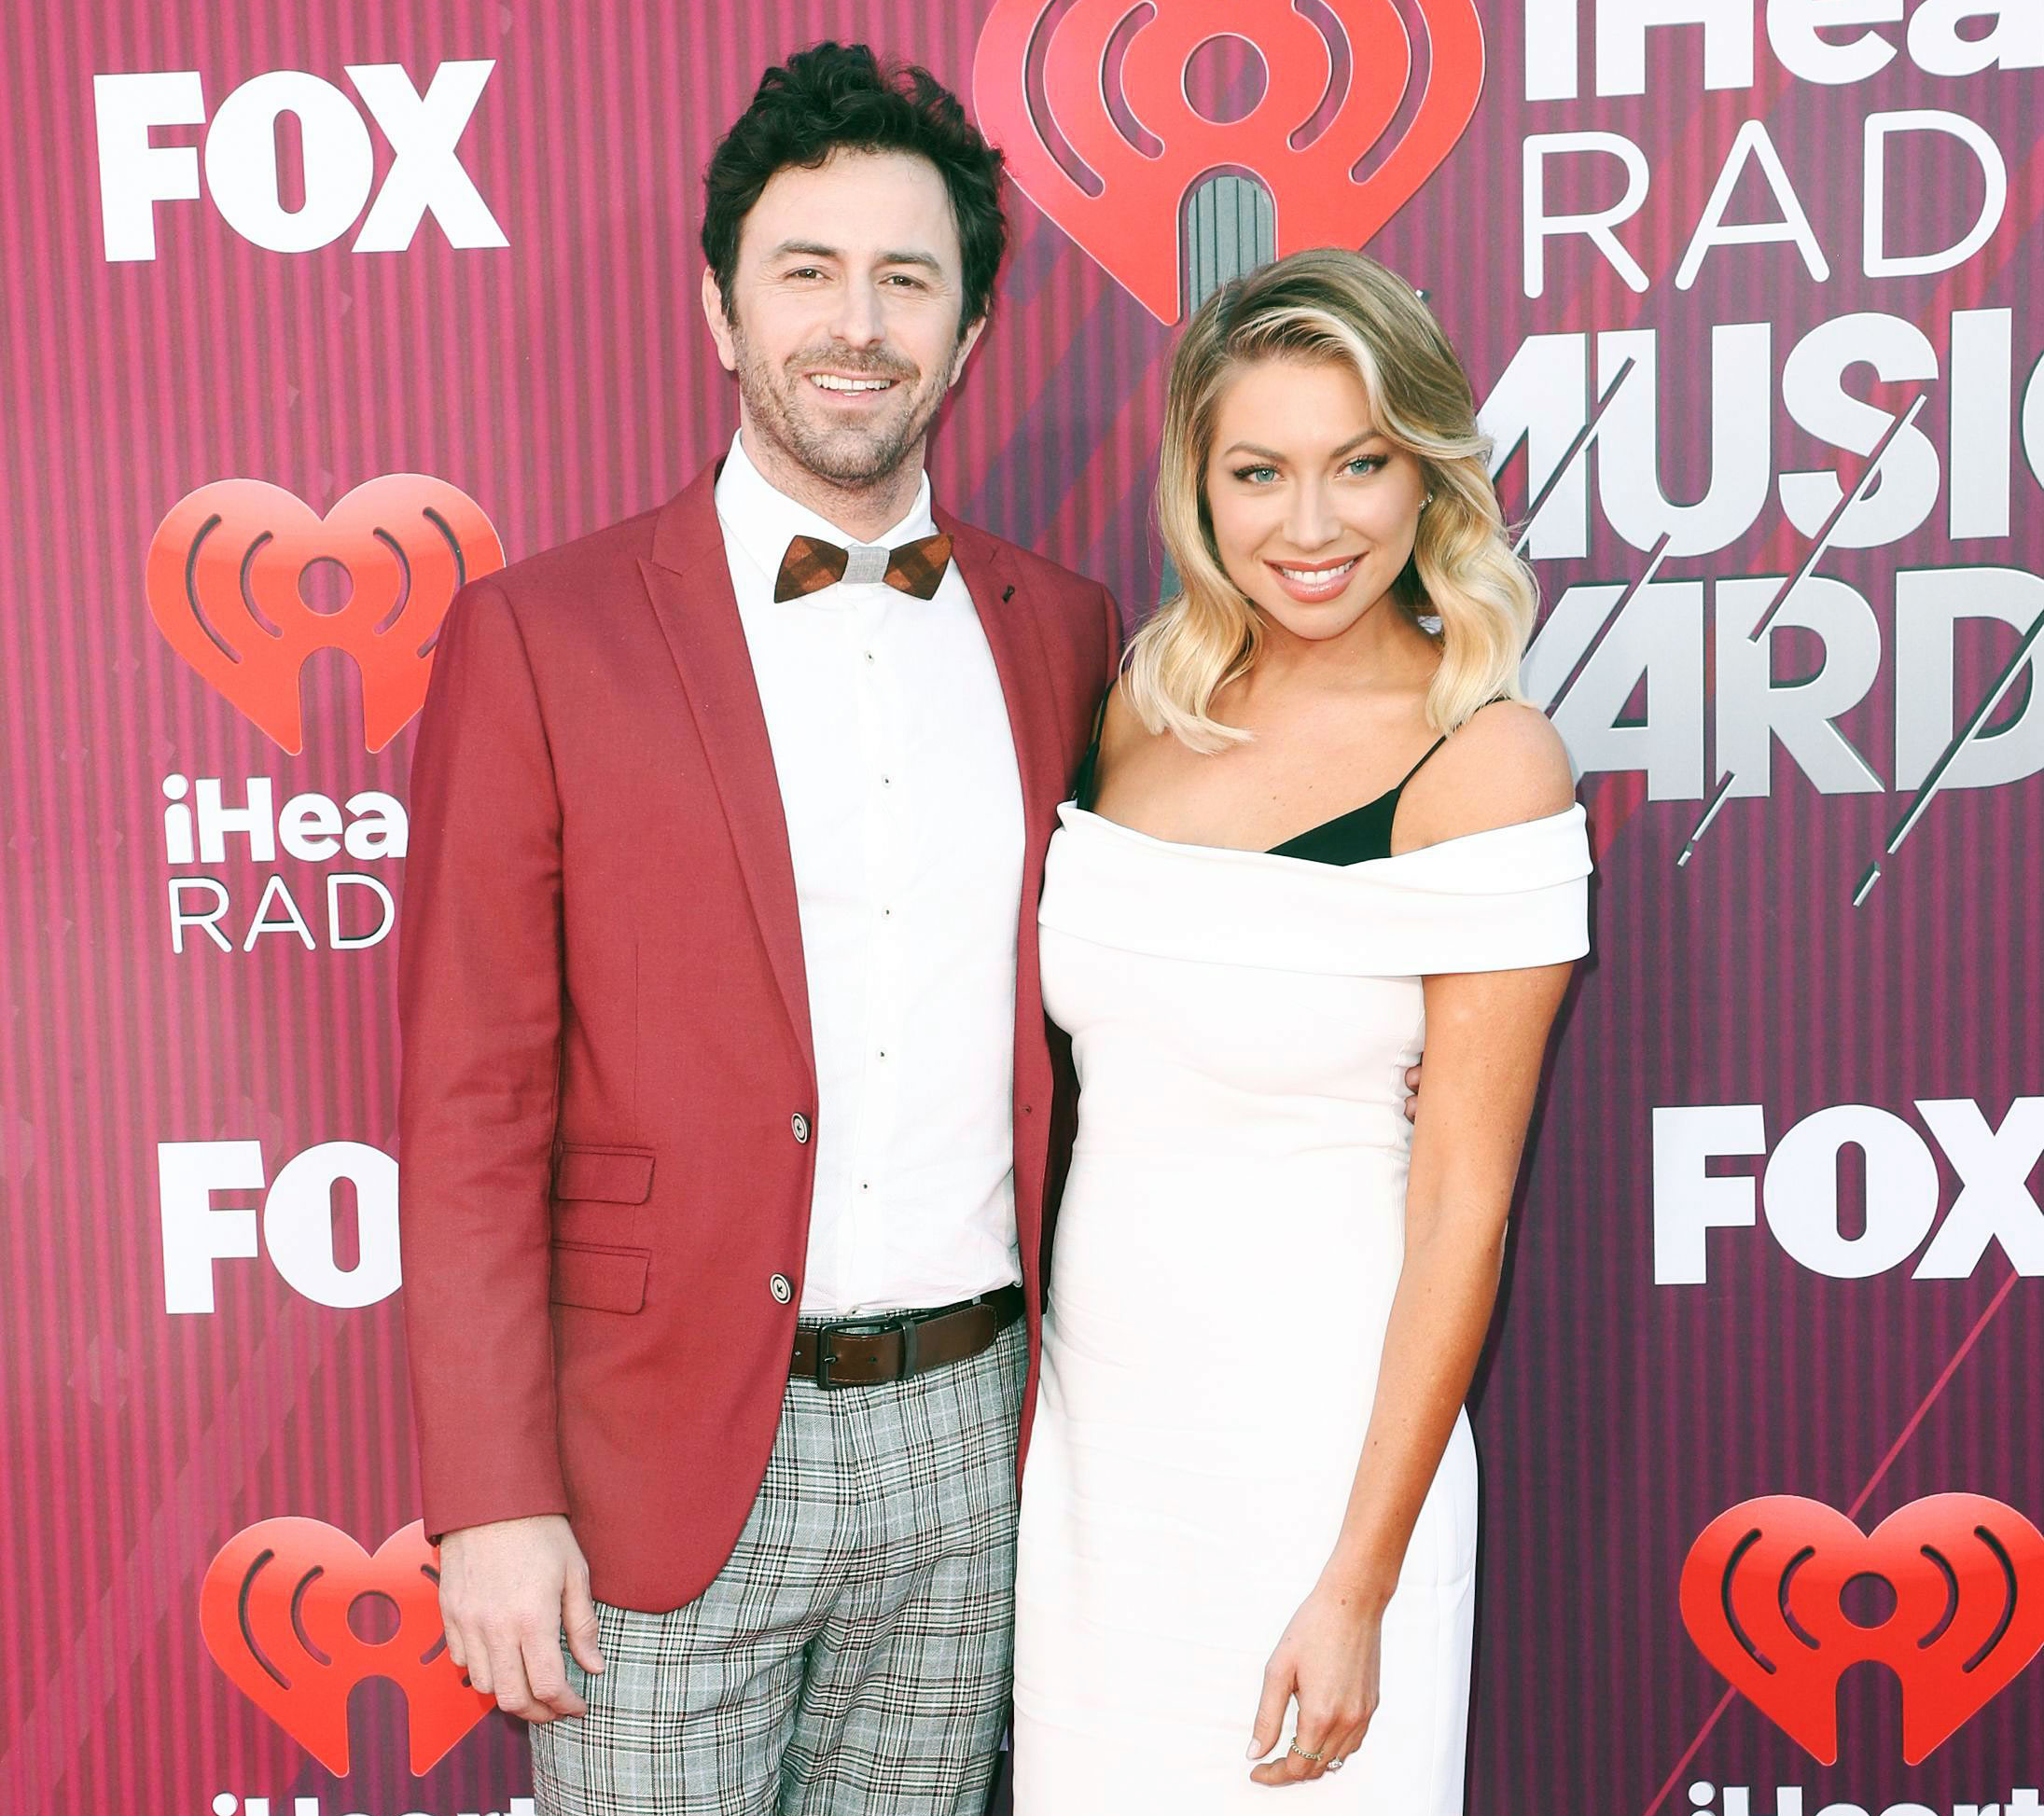 Stassi Schroeder and Beau Clark Wouldnt Be Mad About Quarantine Baby